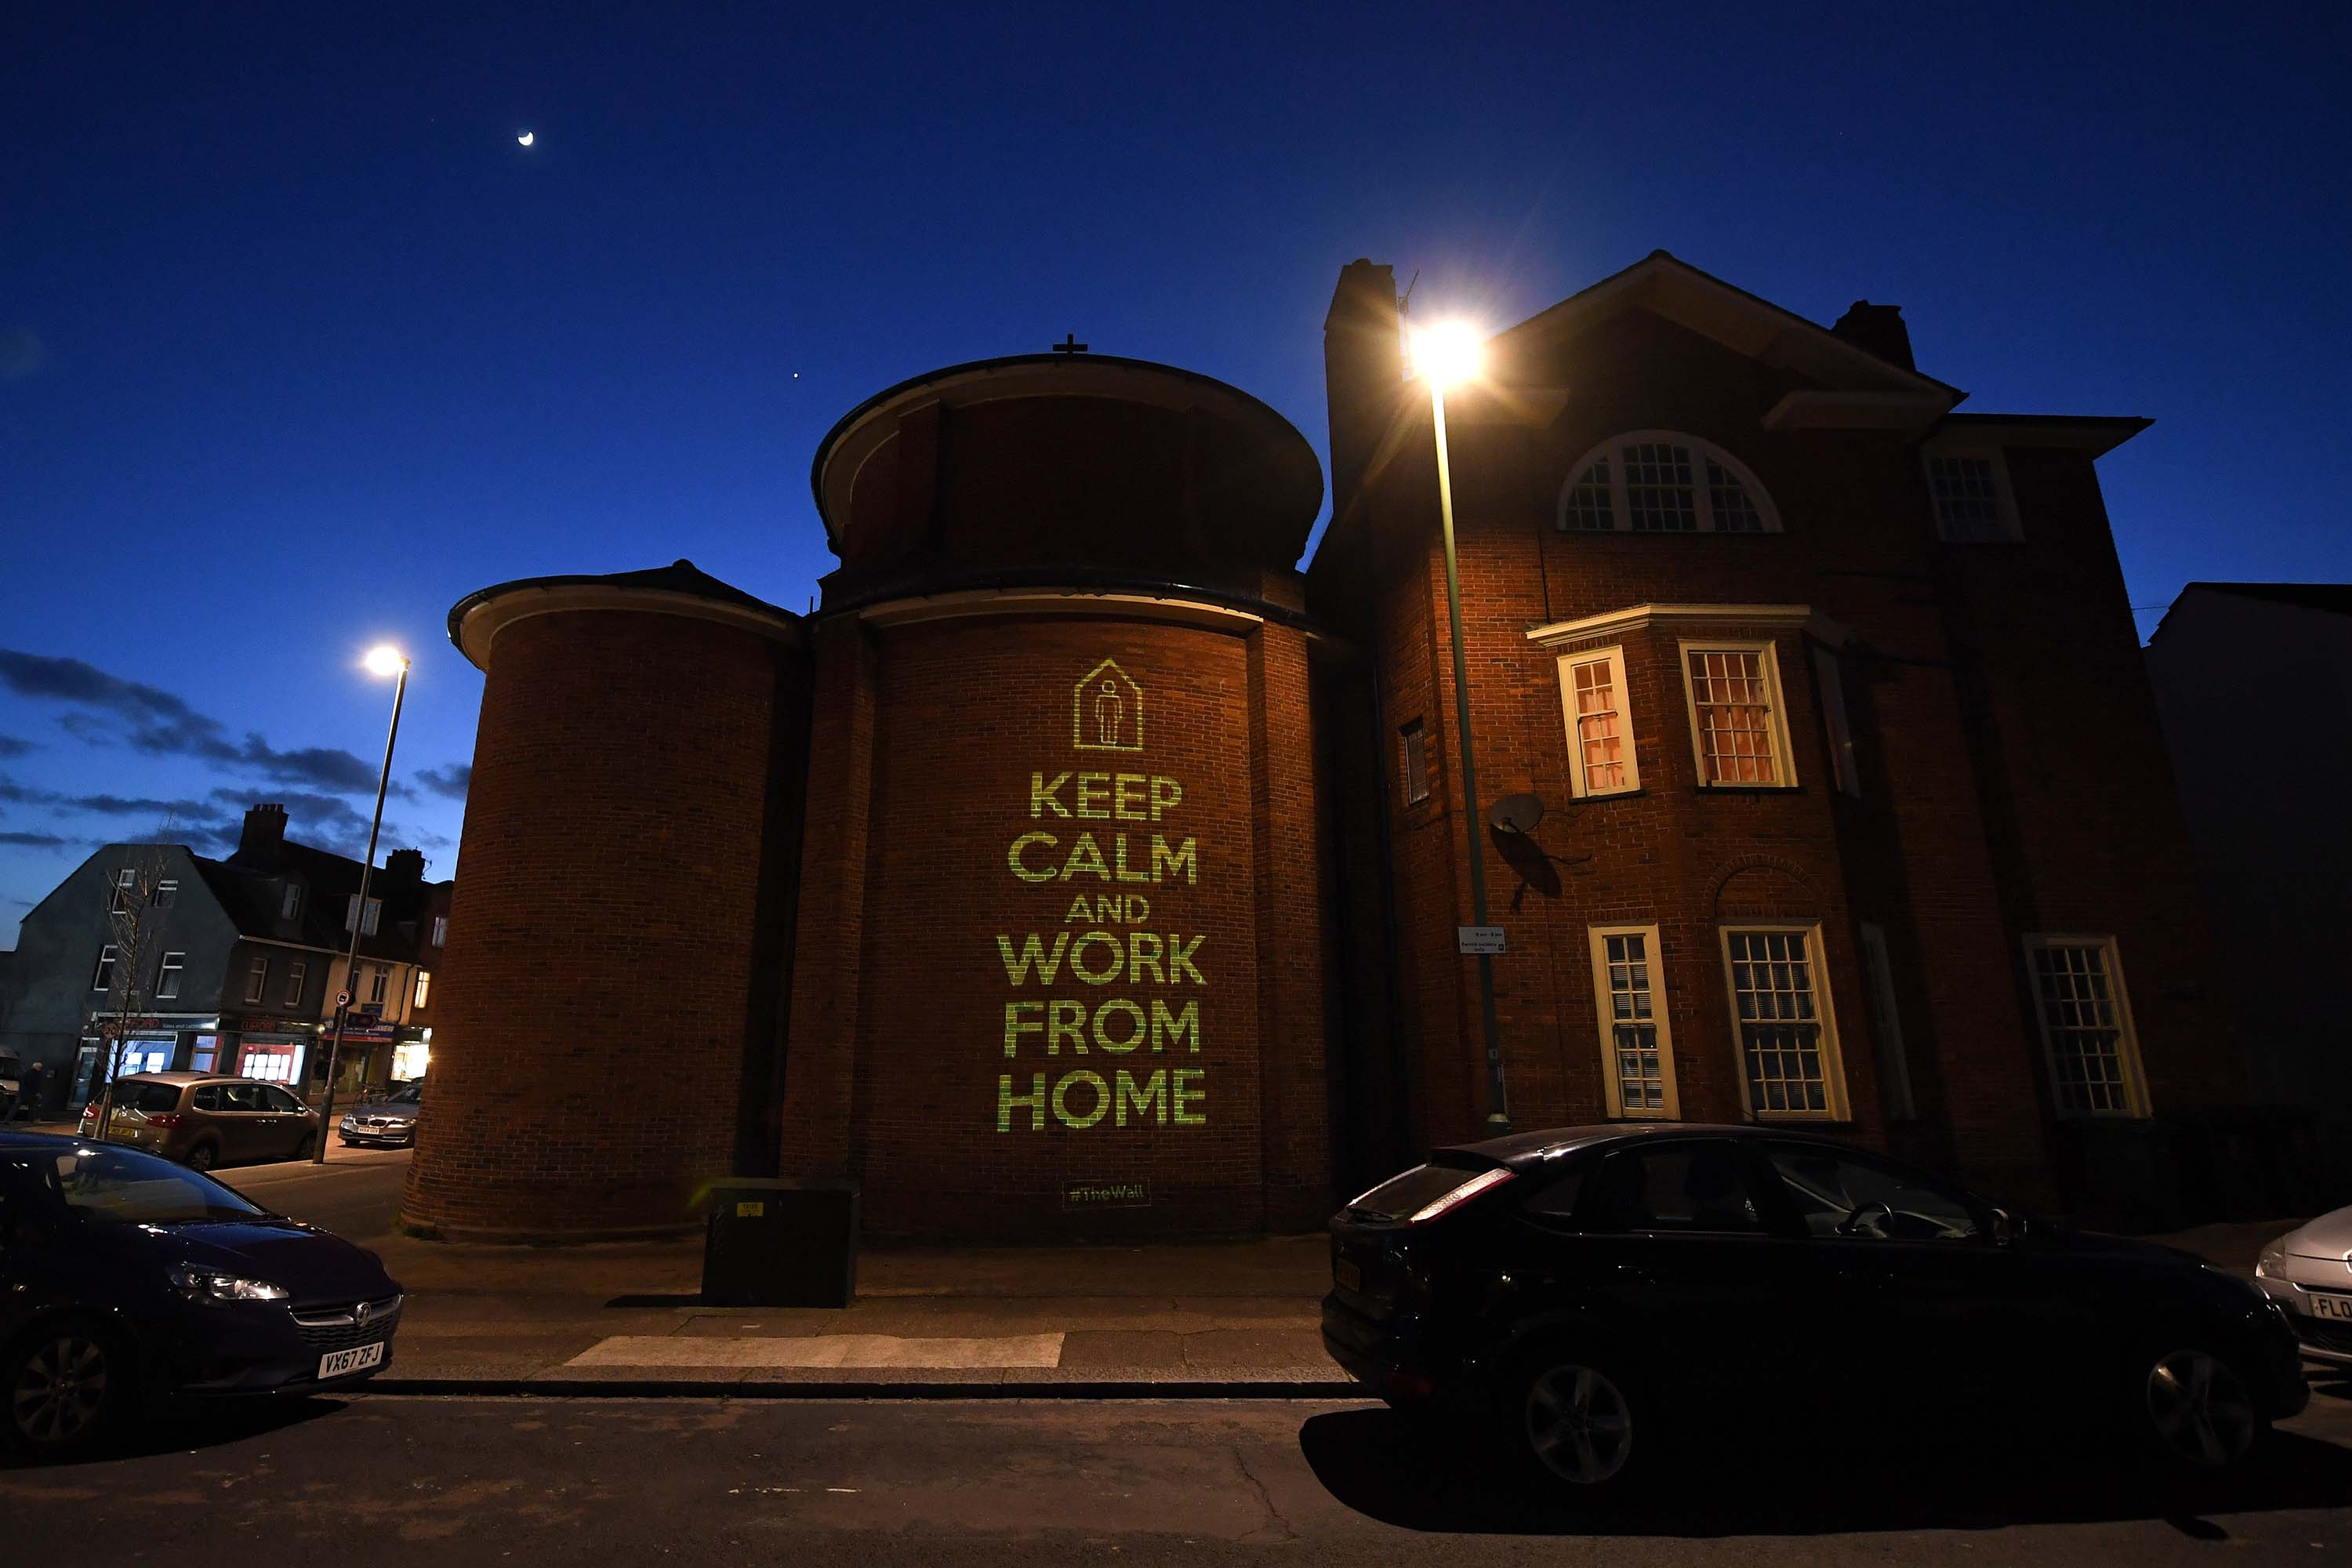 A message of 'Keep Calm And Work From Home' by artist Mike Dicks is projected onto a wall of a church in Brighton & Hove, England, on March 29.